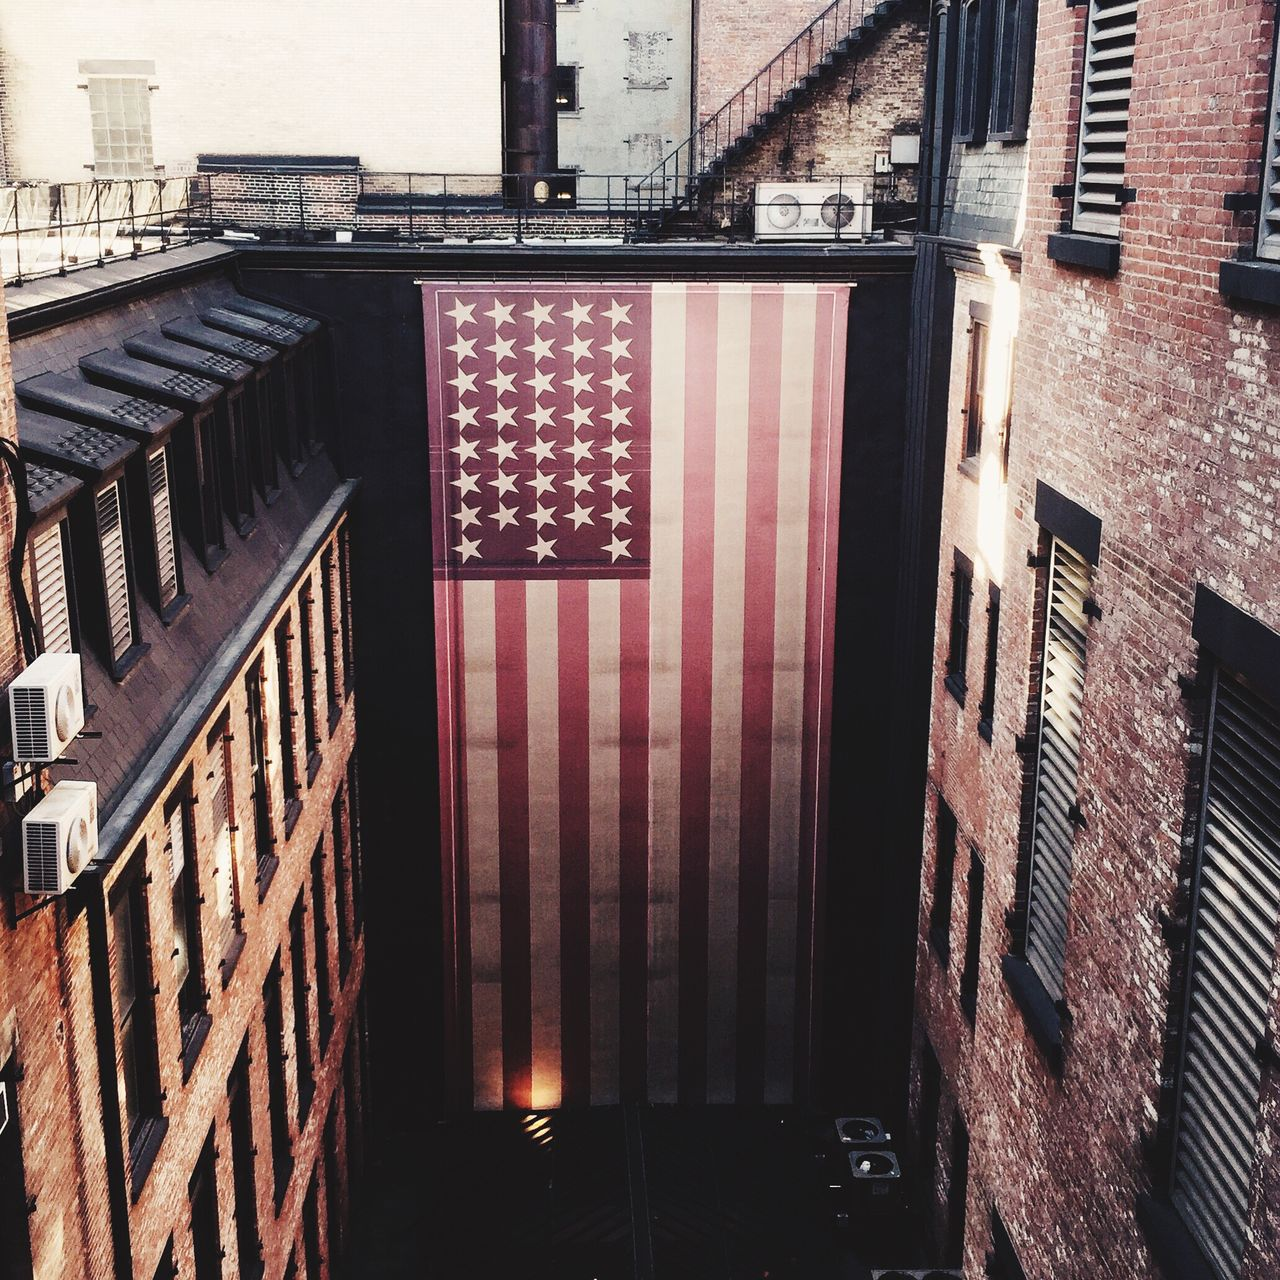 High angle view of american flag on building in city